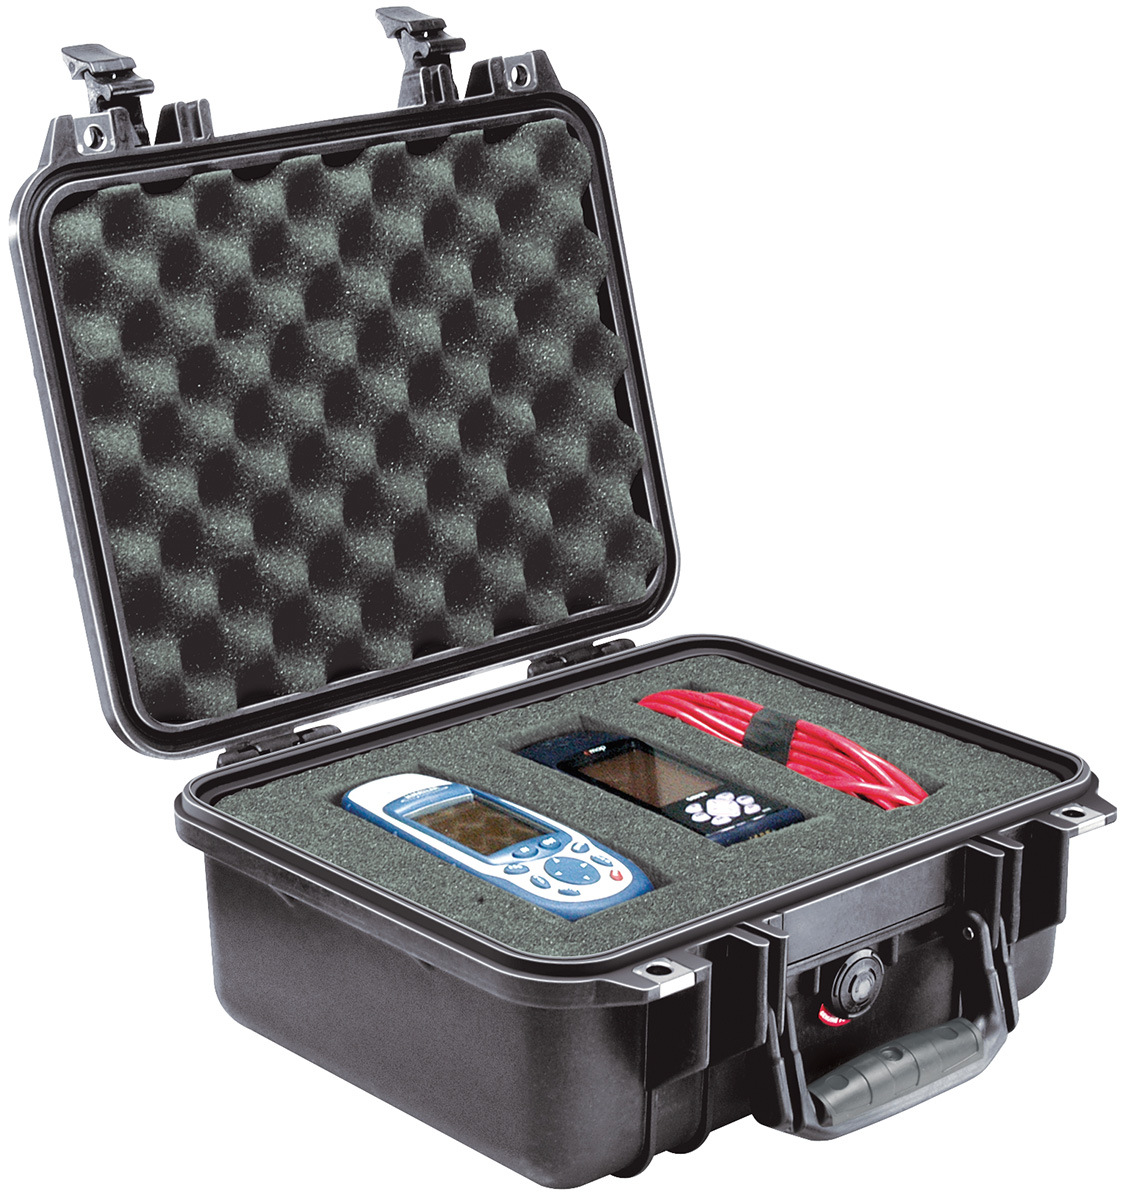 pelican 1400 crush water proof electronics case